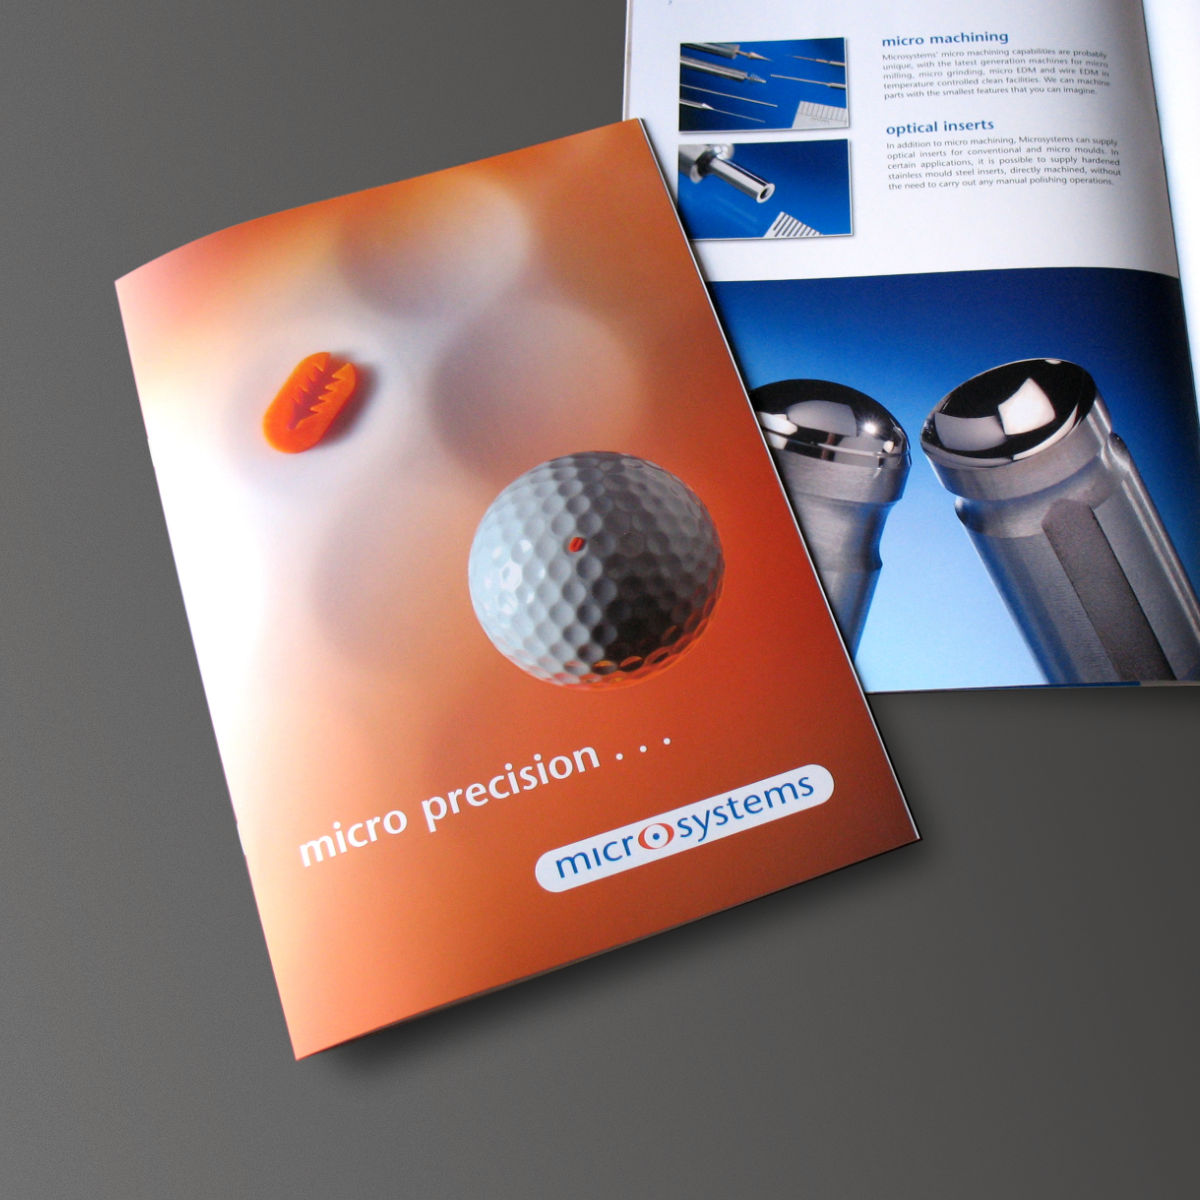 Microsystems Company Brochure, Print Design and Web PDF Download, produced by Orangebox